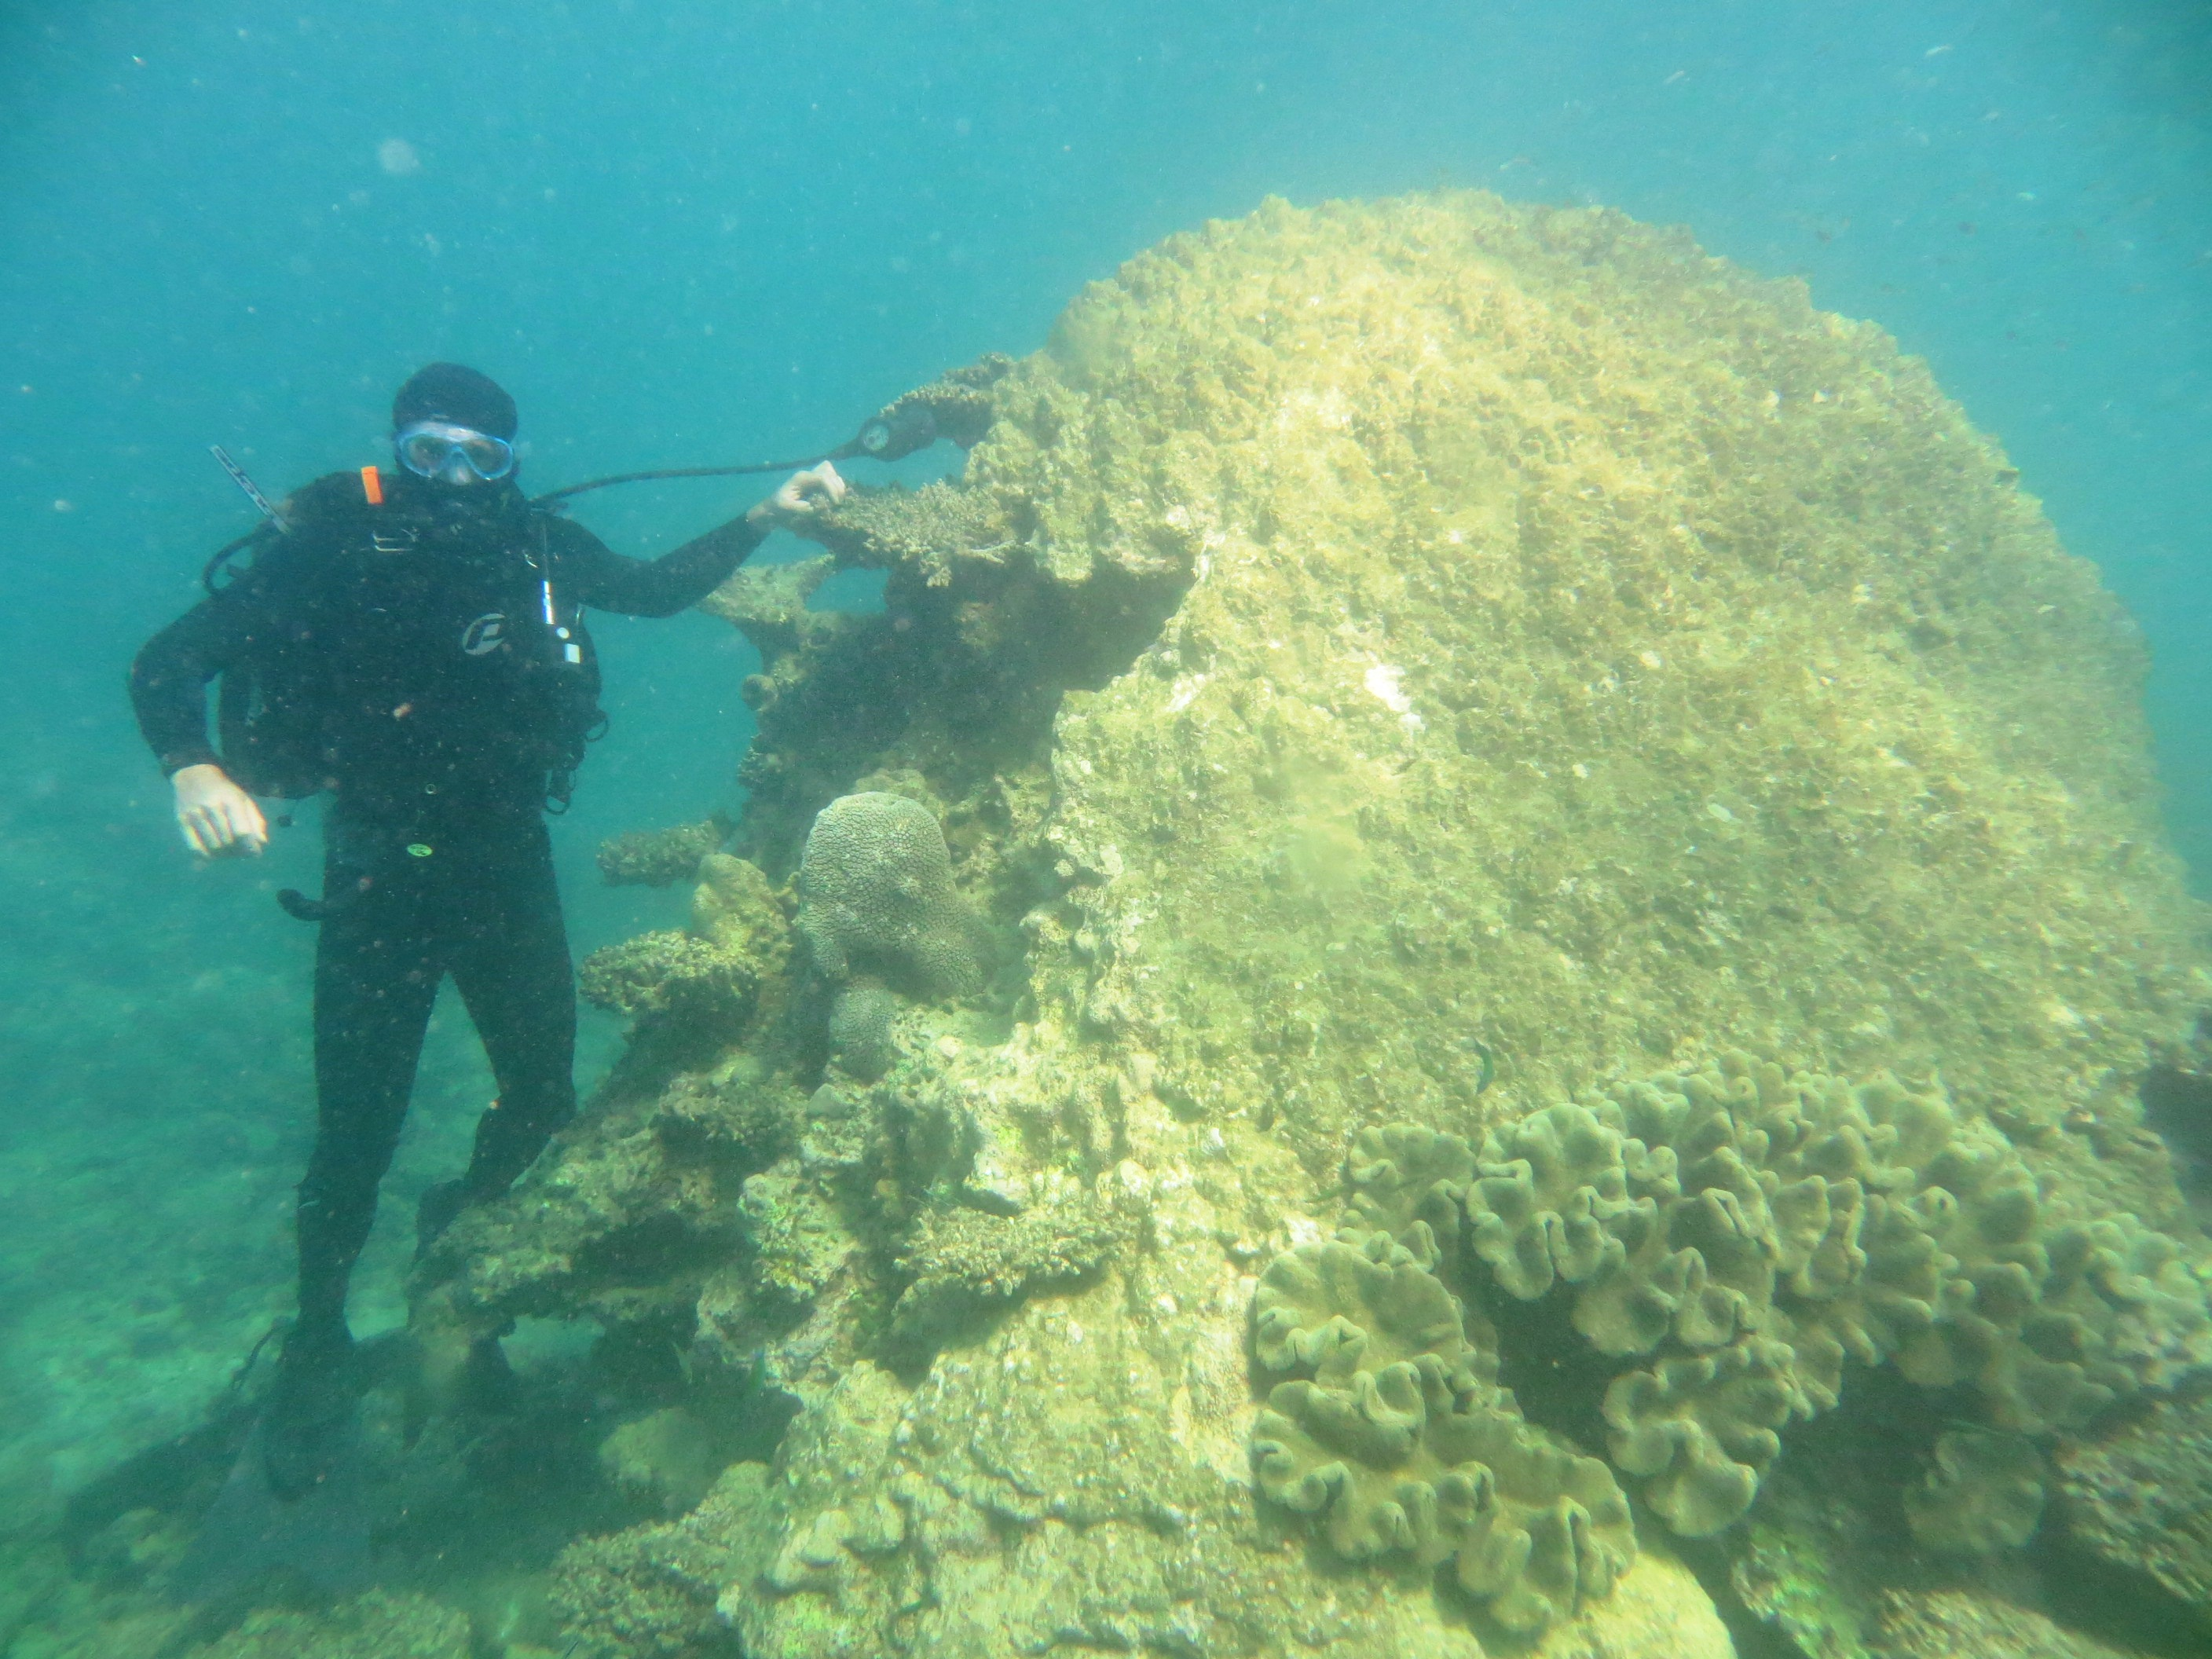 Dr Tim Langlois, scuba diving, with a 400 year old Porites coral head that has succumbed to coral bleaching.